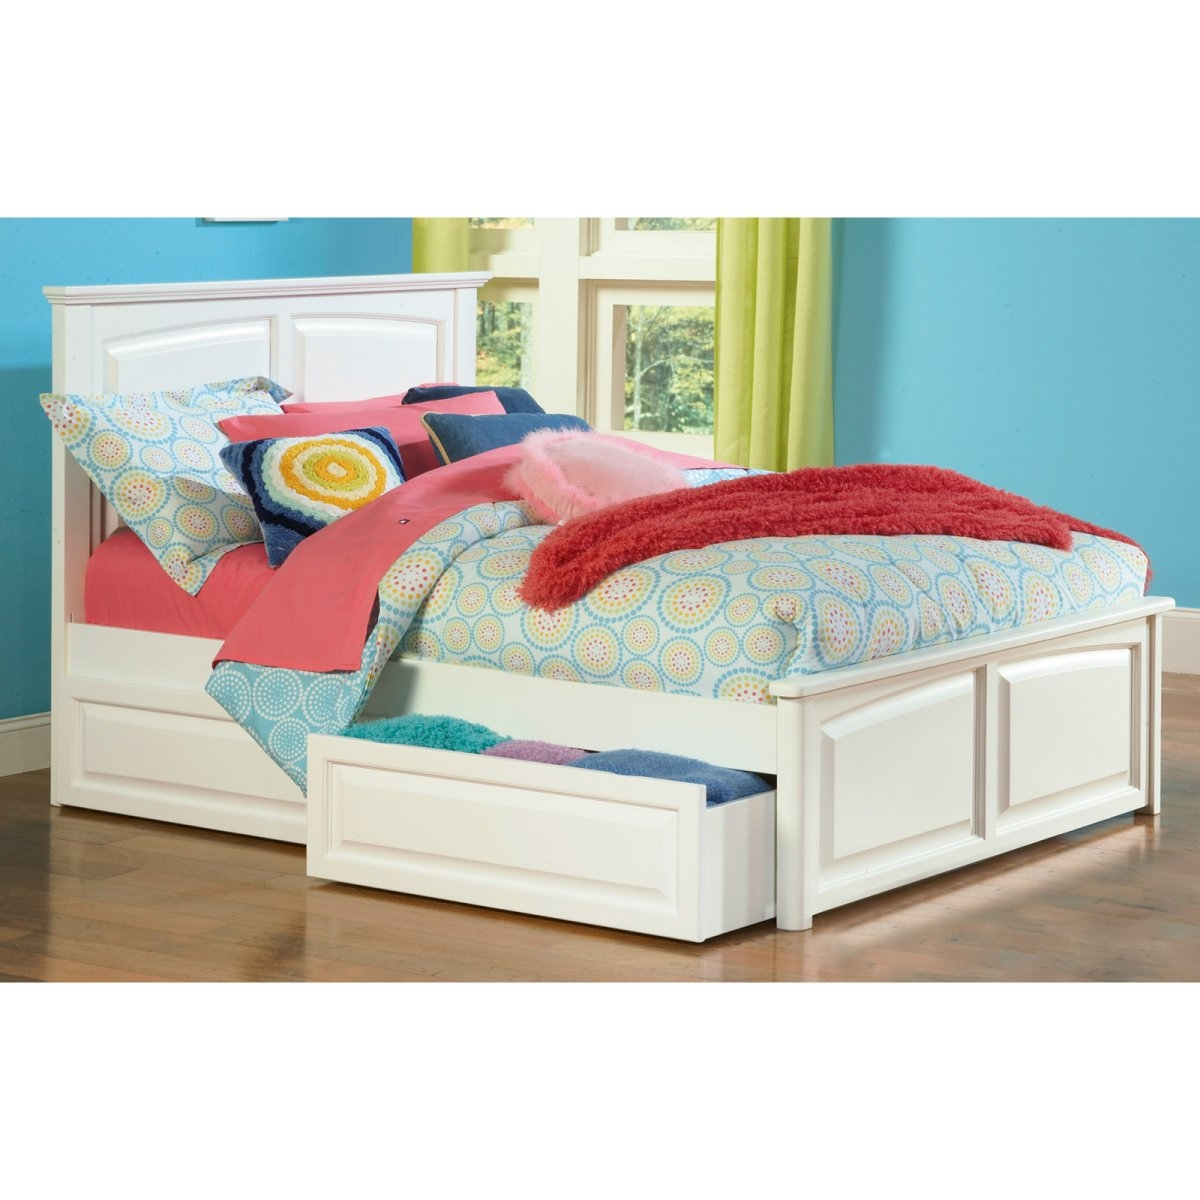 Permalink to White Wooden Twin Bed Frame